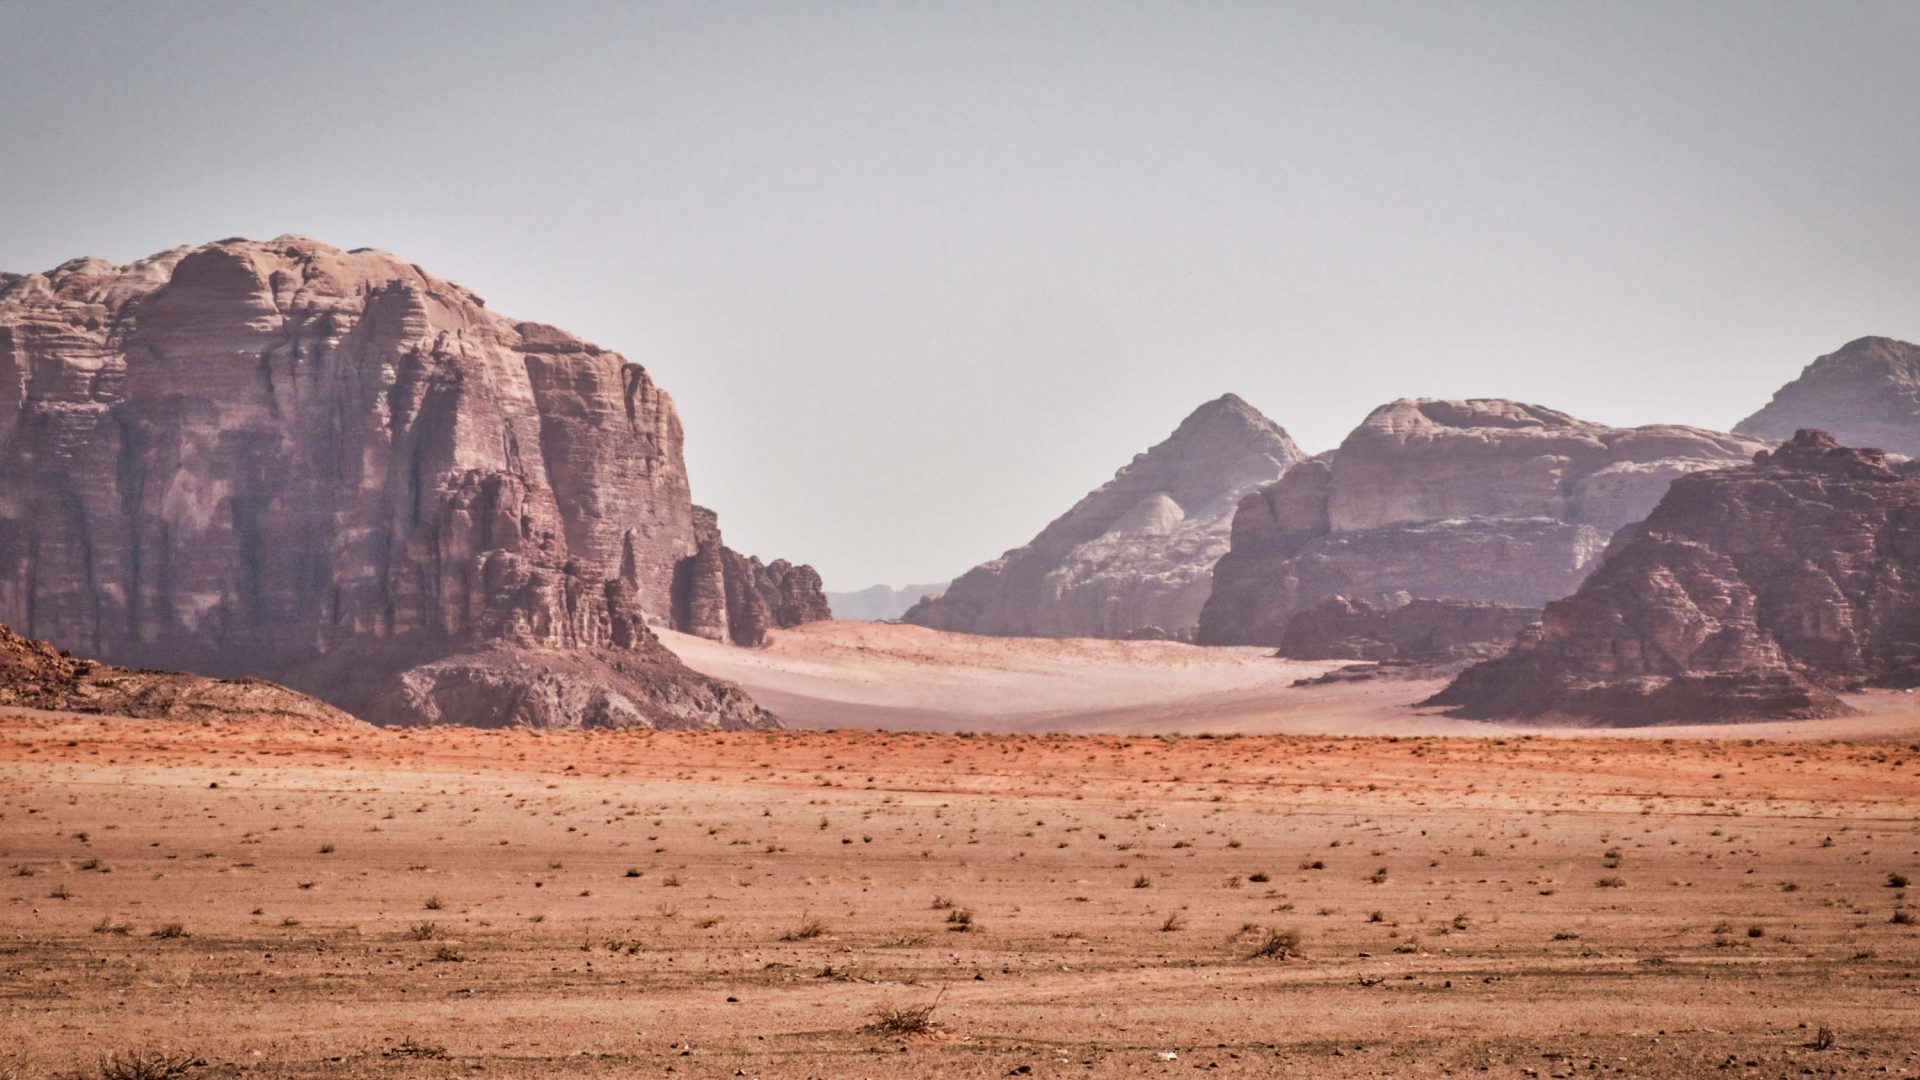 The great mountains of Wadi Rum jut out of the desert sands on the Jordan Trail.